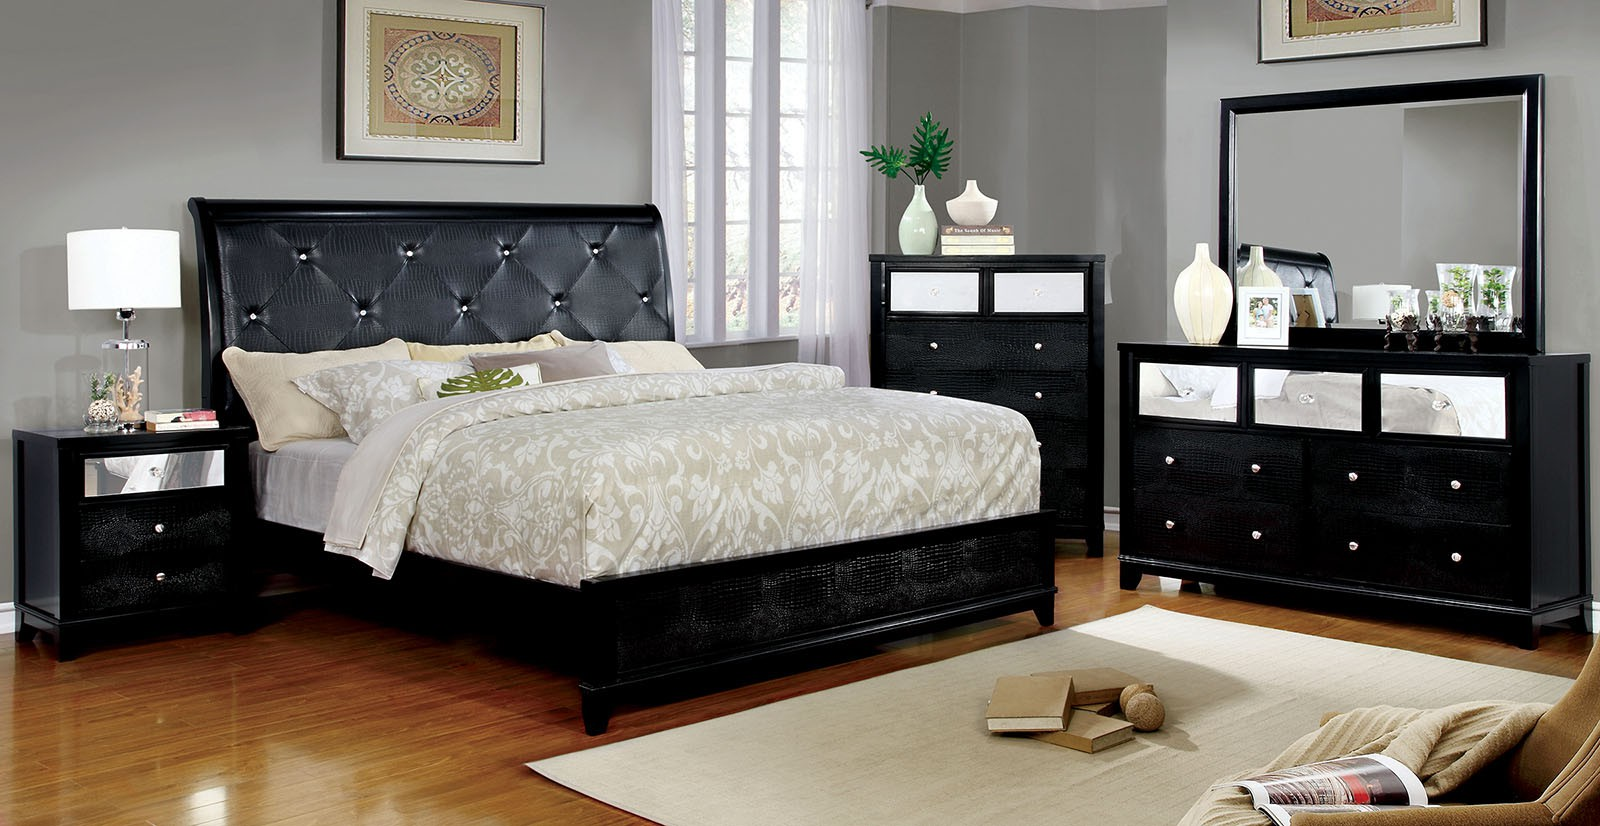 Black Classic 4pc Set Bedroom Furniture Cal king Size Bed Dresser Mirror  Nightstand